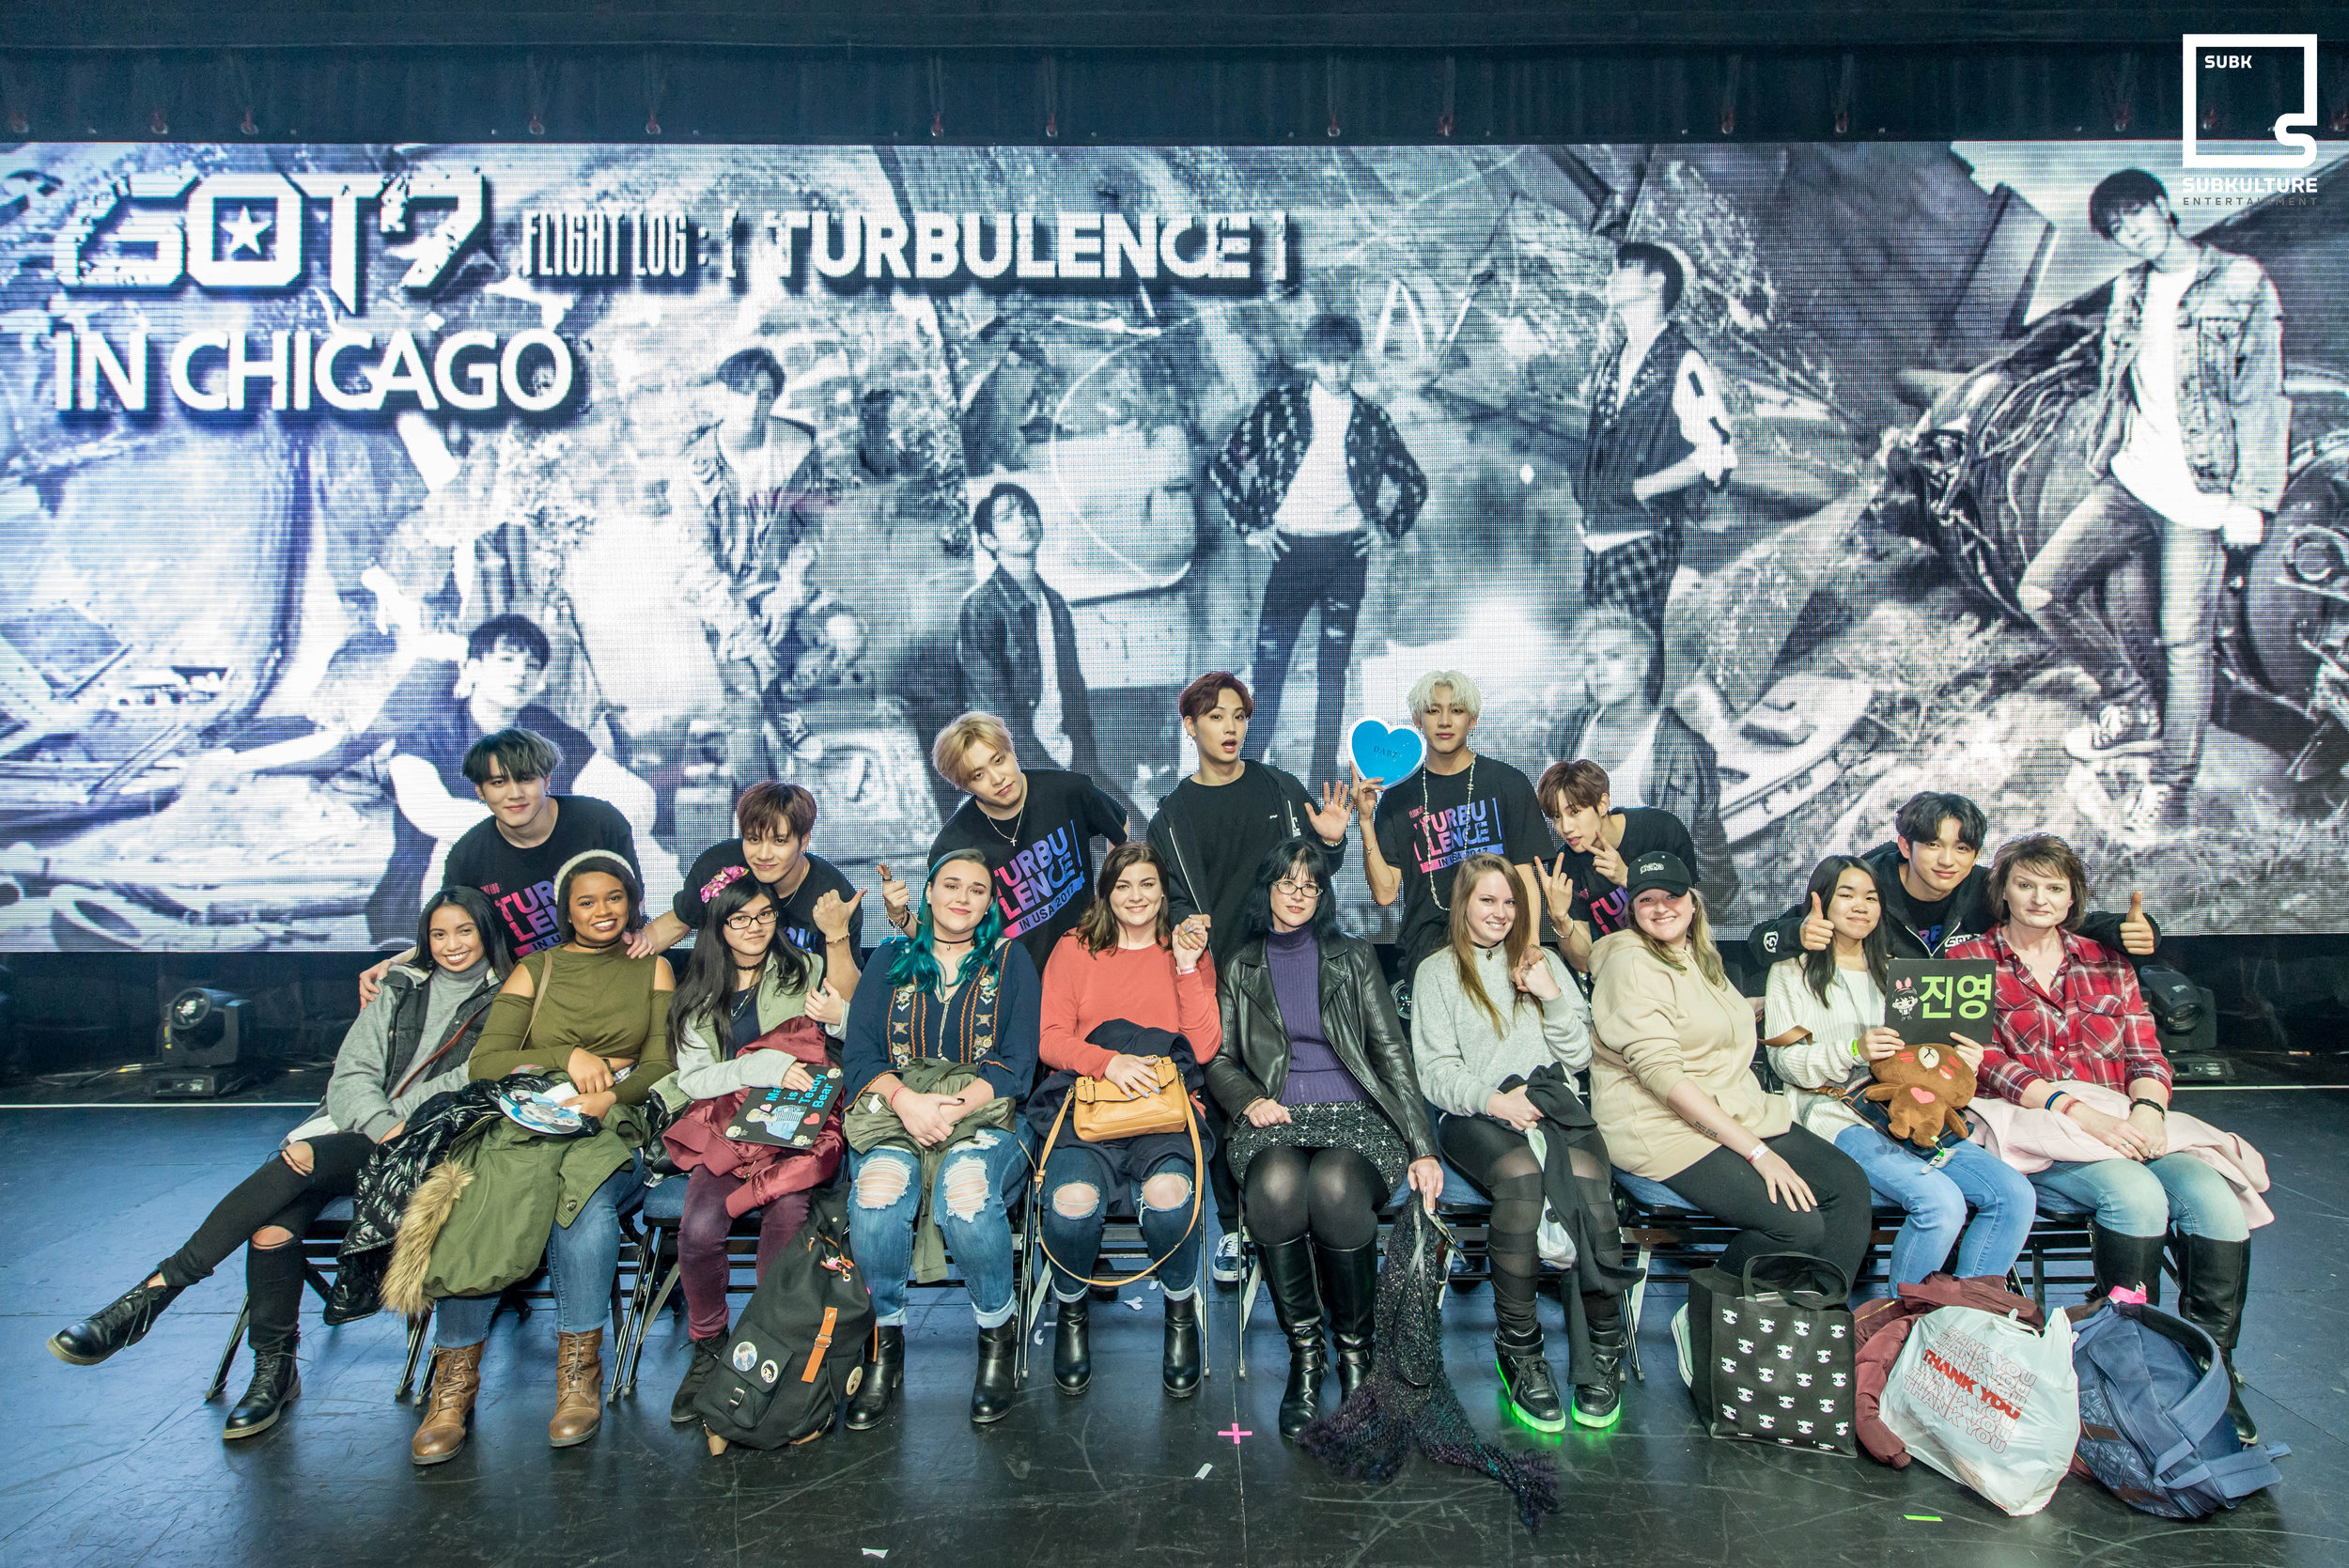 GOT7 Fan Photo Chicago Rosemont Theatre 2017 SubKulture Entertainment-3214 copy.jpg